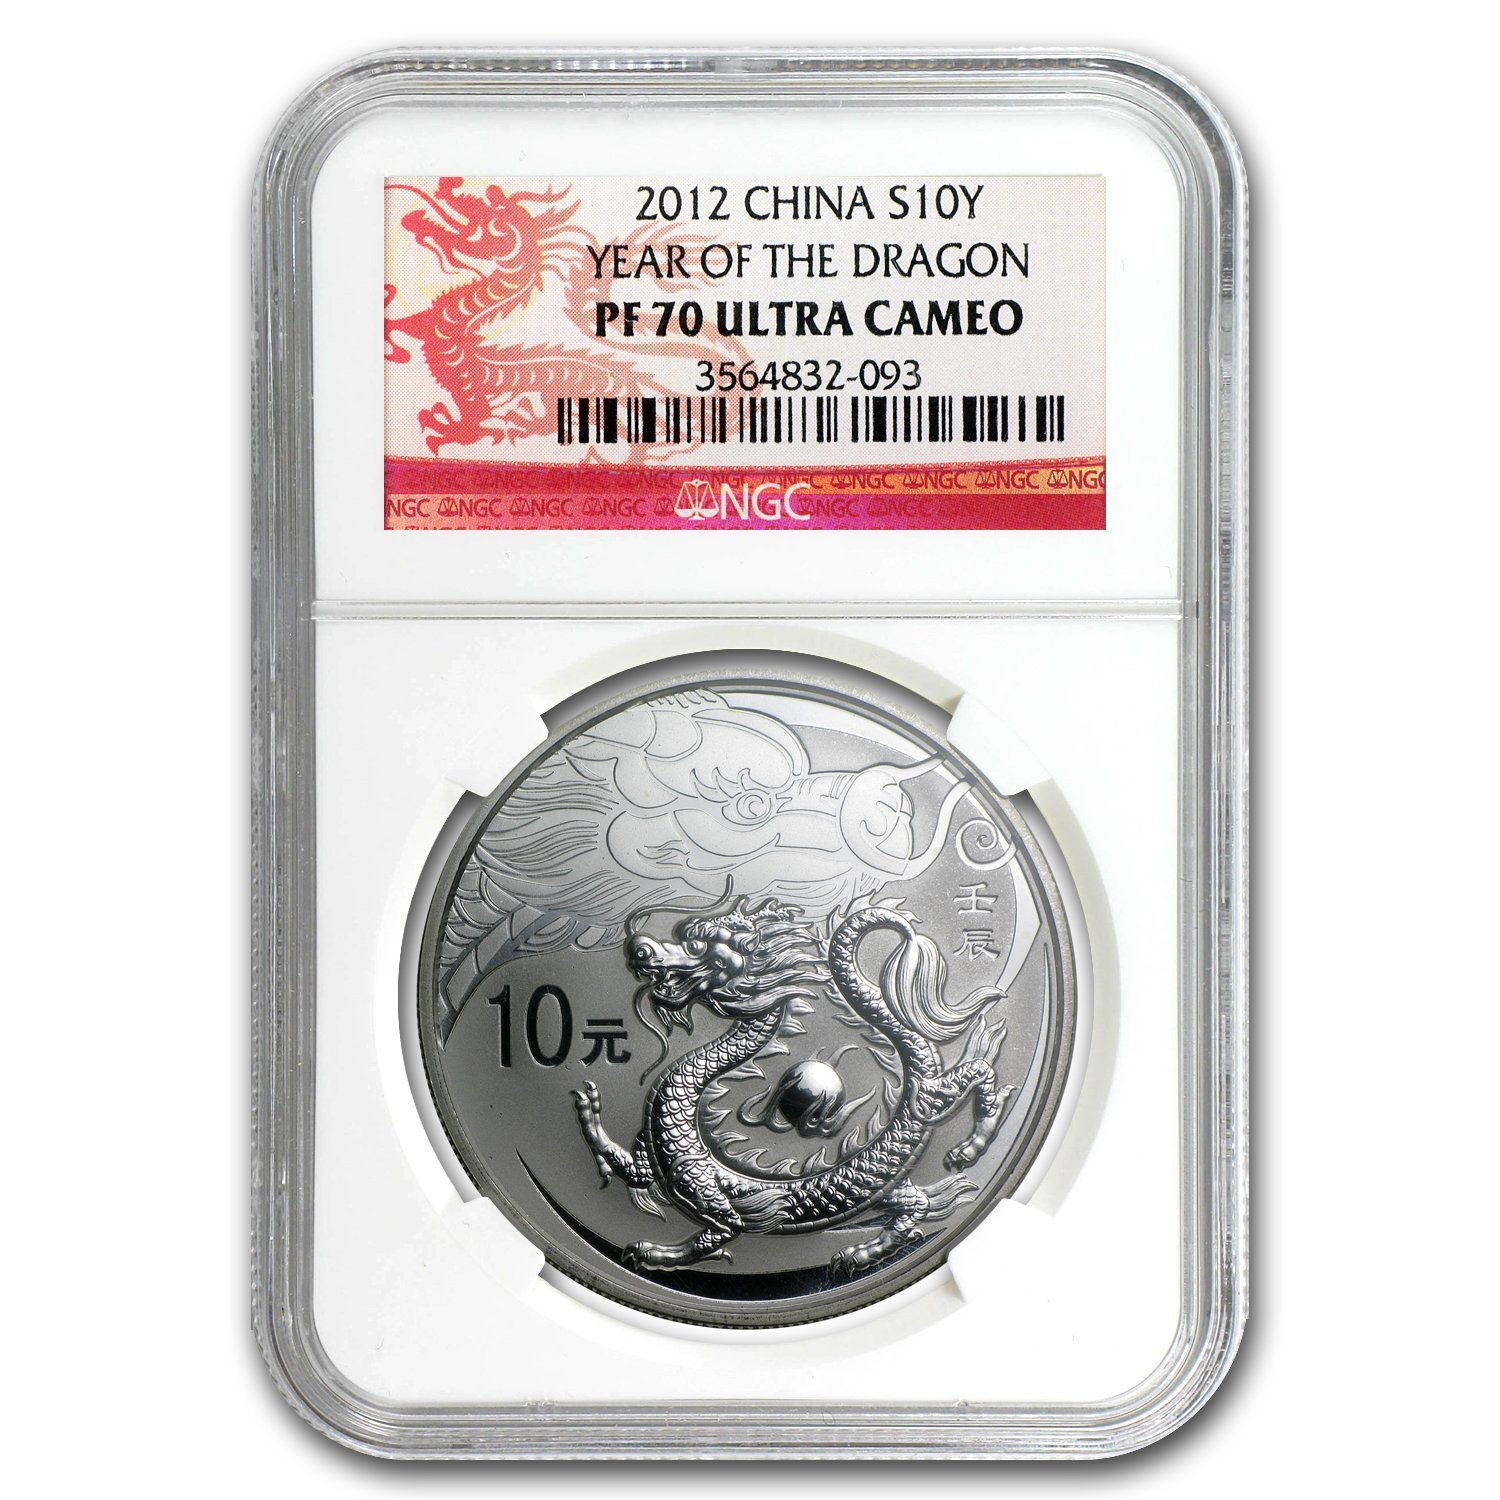 2012 China 1 oz Silver Dragon Proof PF-70 NGC